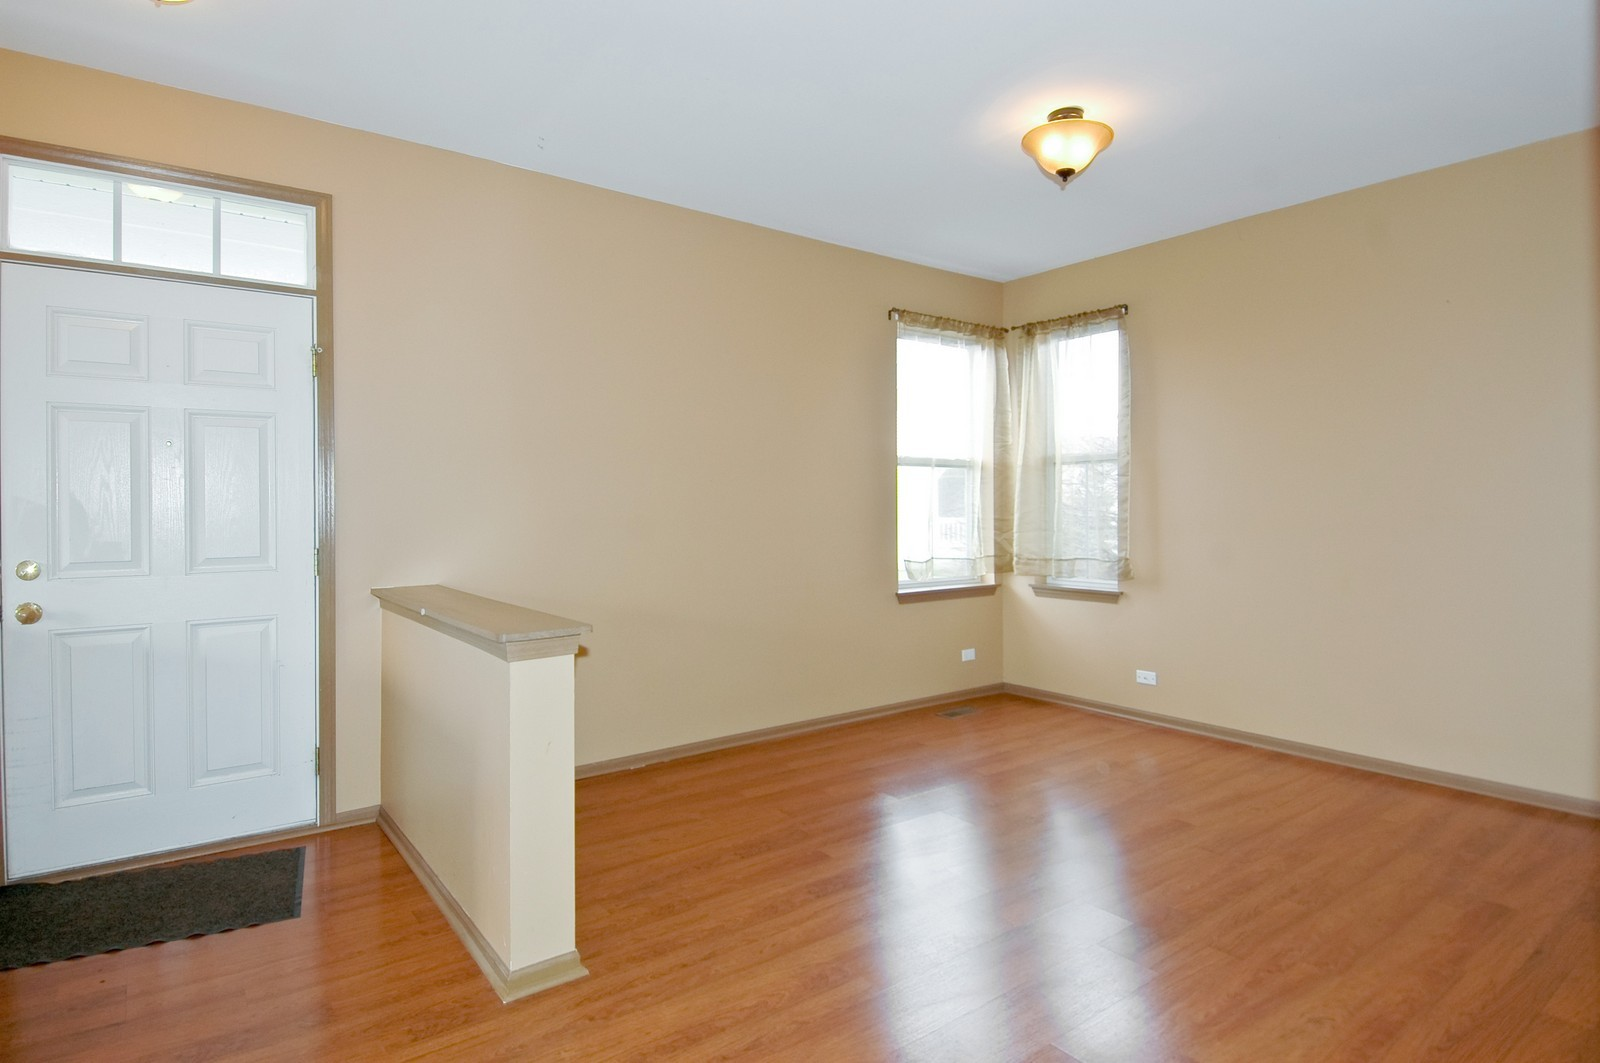 Real Estate Photography - 2988 Langston, St Charles, IL, 60175 - Foyer/Dining Room